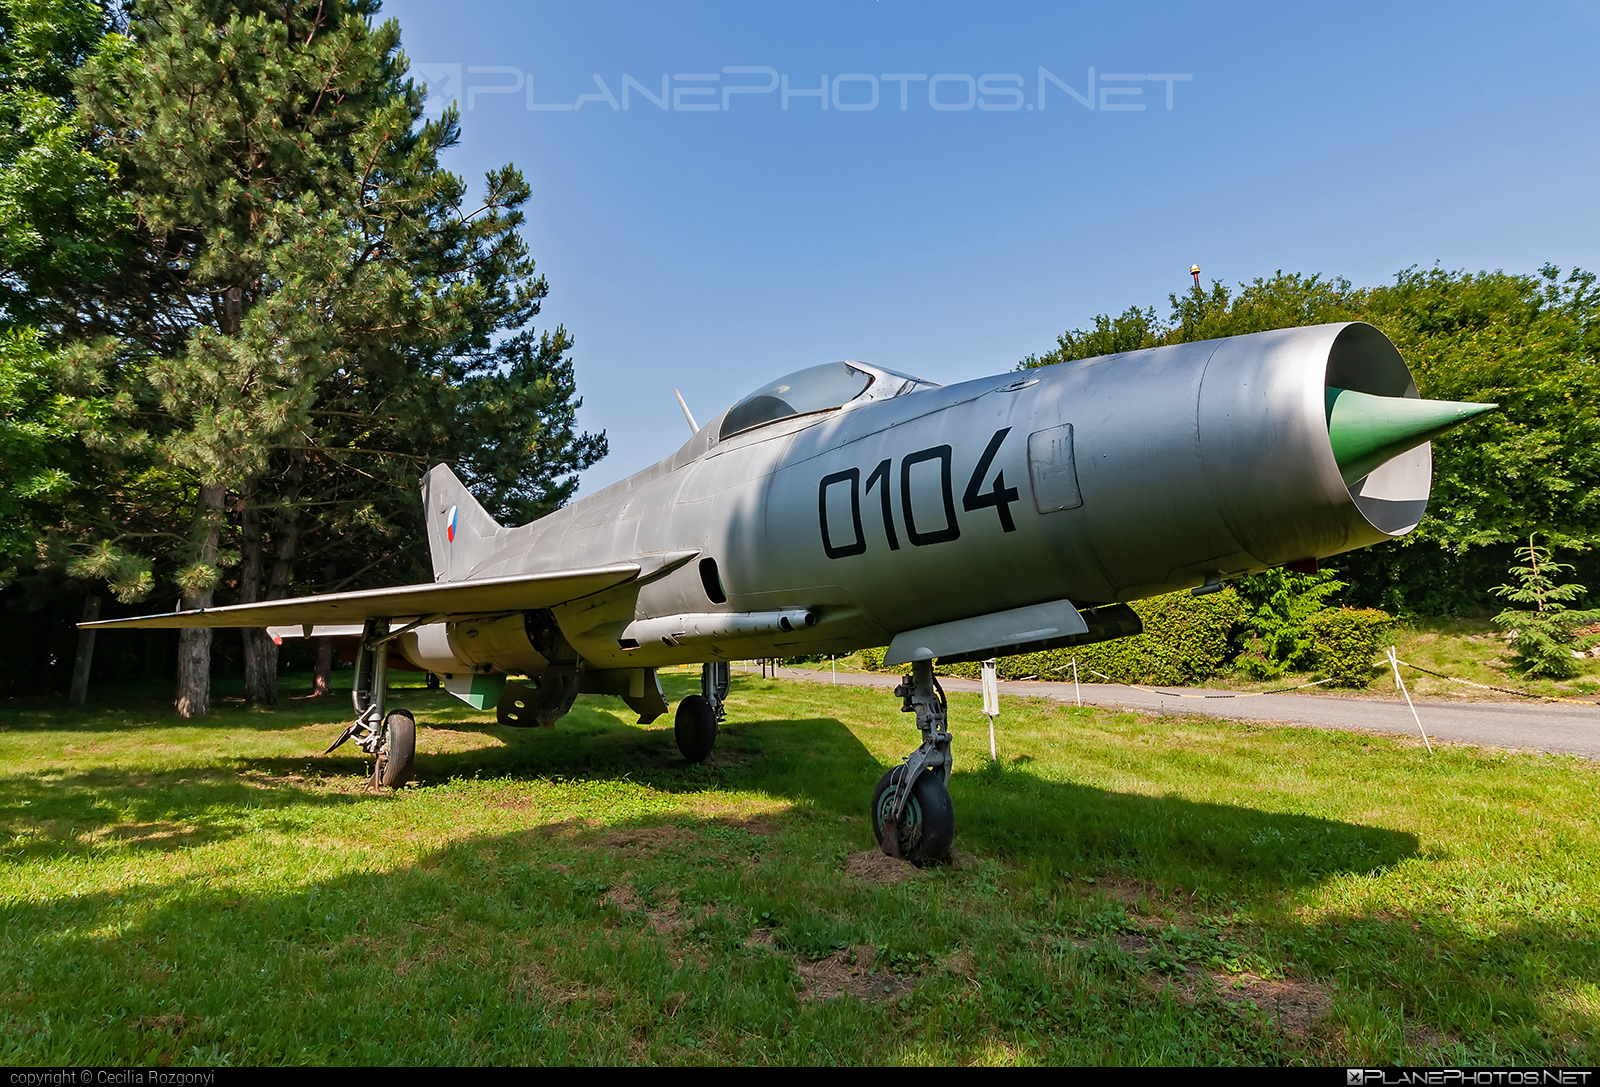 Aero S-106 - 0104 operated by Letectvo ČSĽA (Czechoslovak Air Force) #aero #aeros106 #mig21 #mig21f13